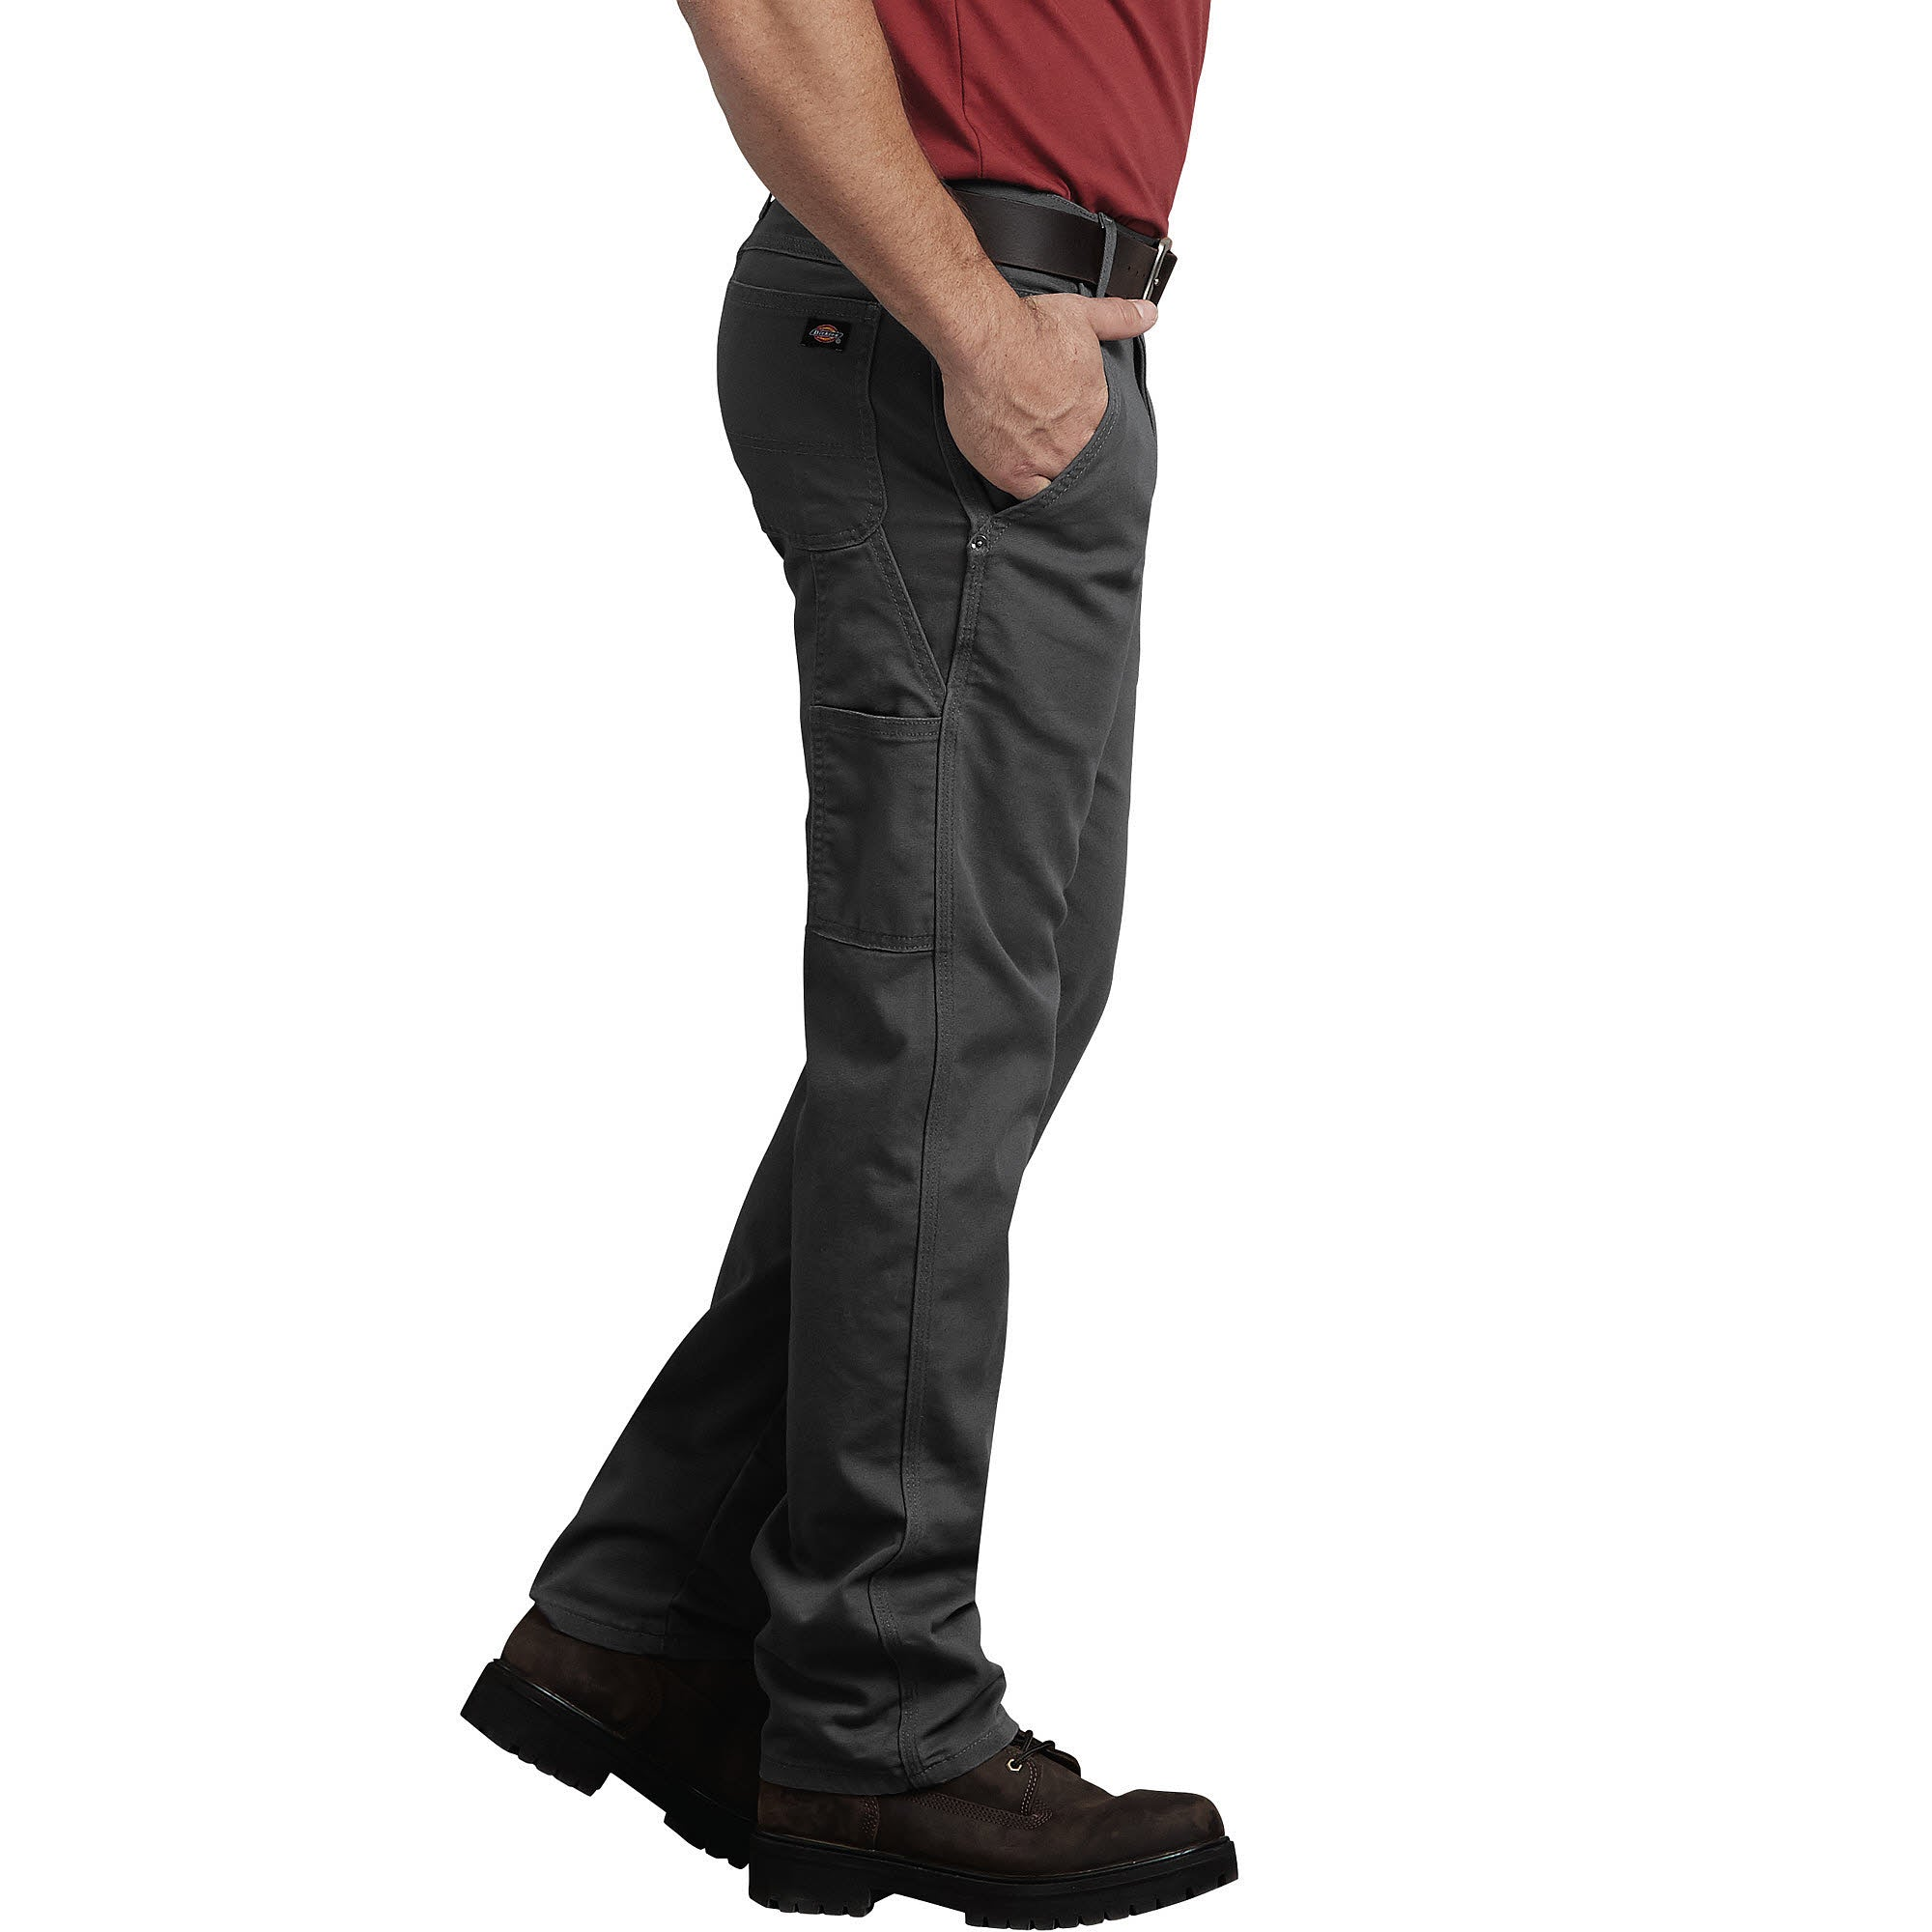 3fa14f9ad46 ... Flex Regular Fit Straight Leg Tough Max Duck Carpenter Pants -  Stonewashed Gray ...